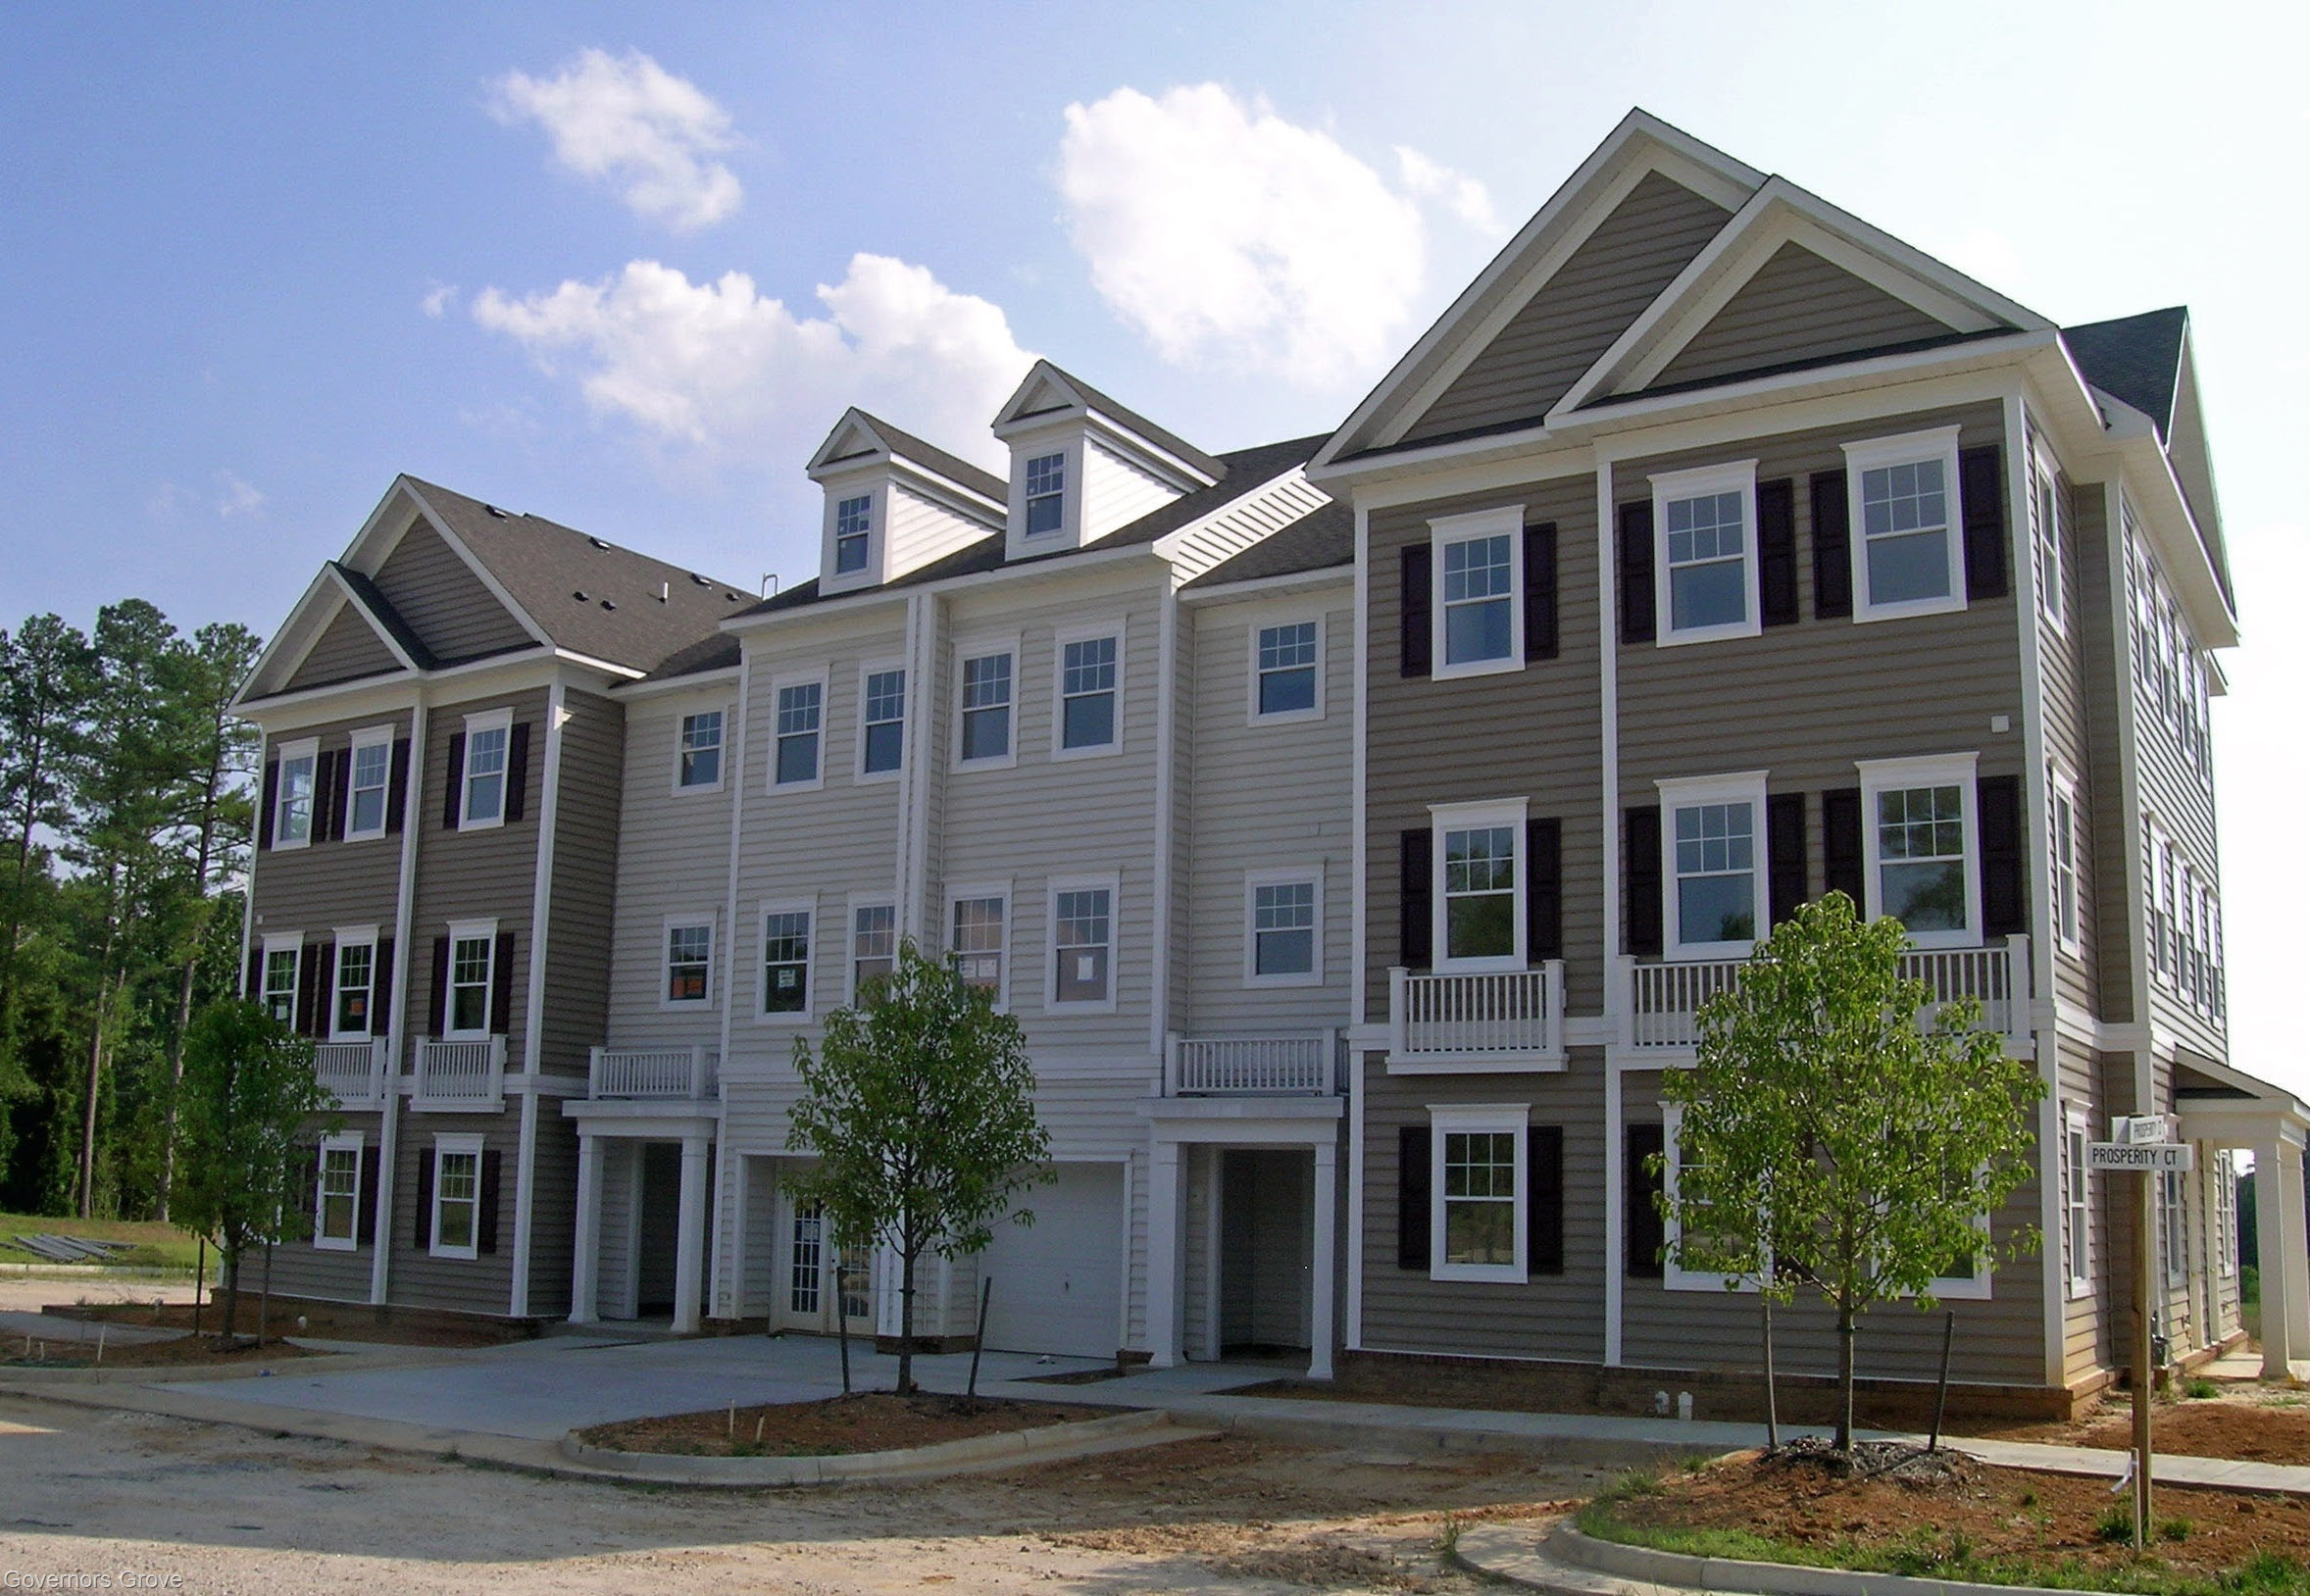 Williamsburg va condos mr williamsburg blogging on life for 3 story townhome plans